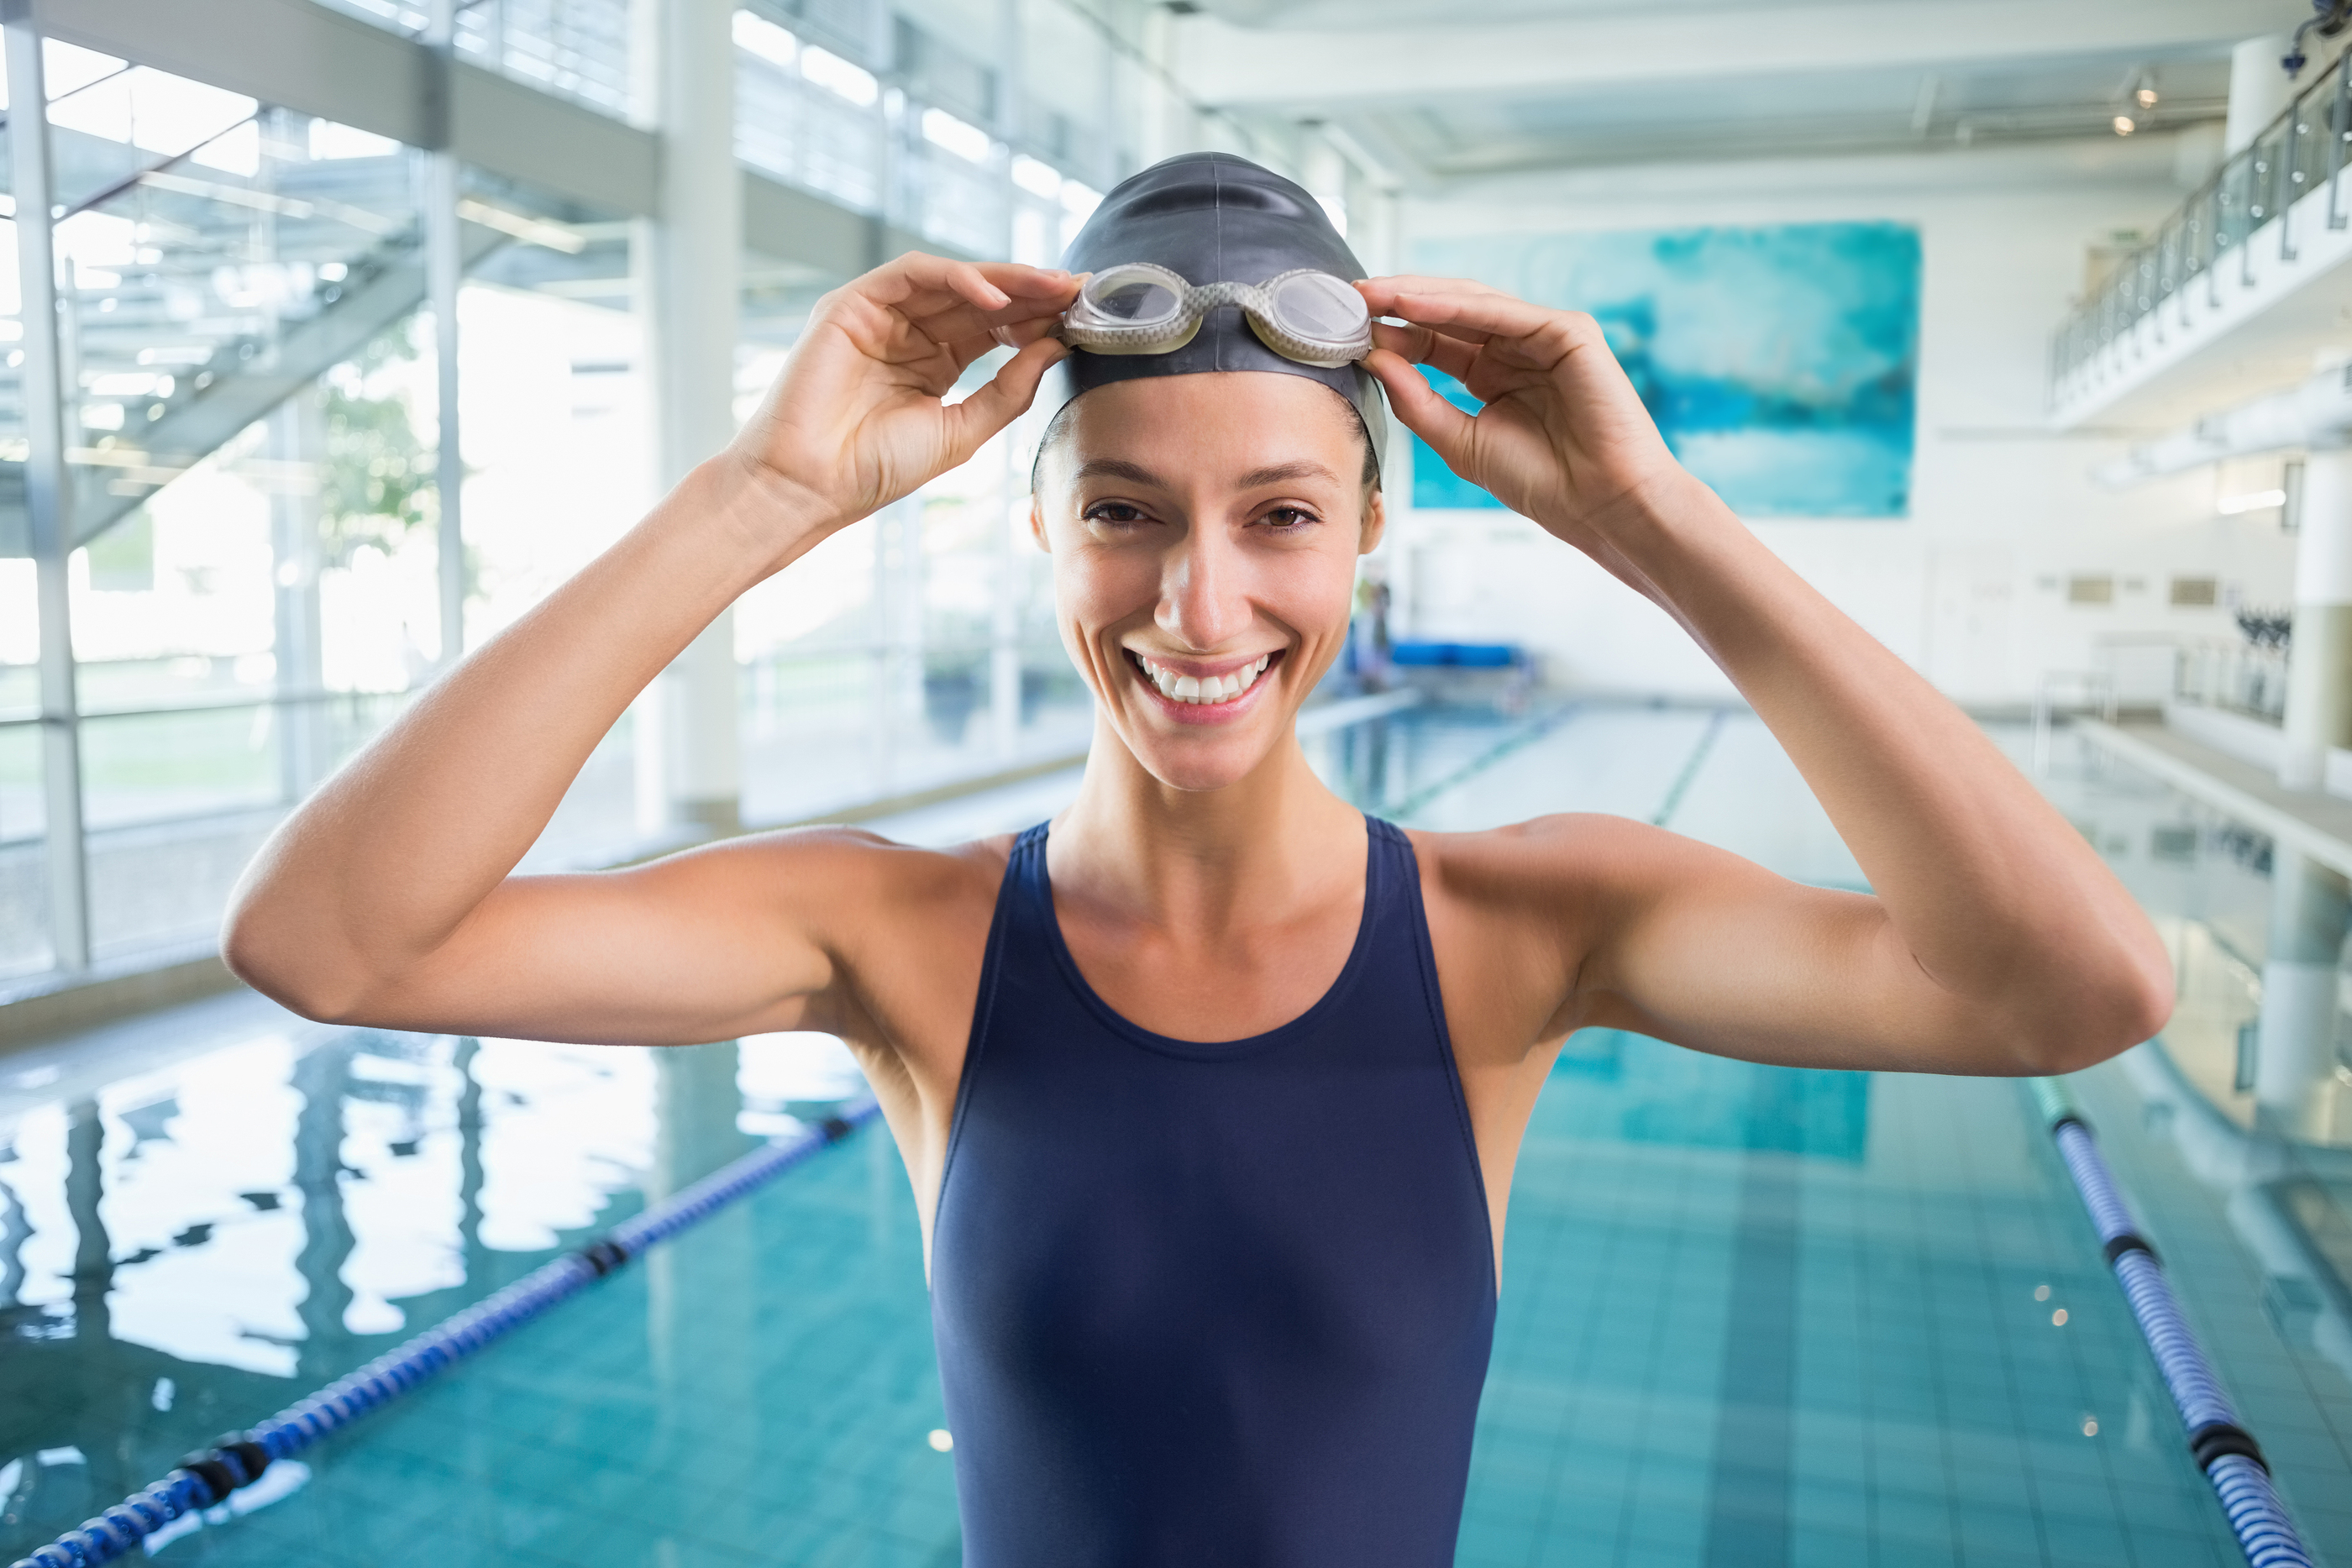 Pretty swimmer standing by the pool smiling at camera at the leisure center.jpg